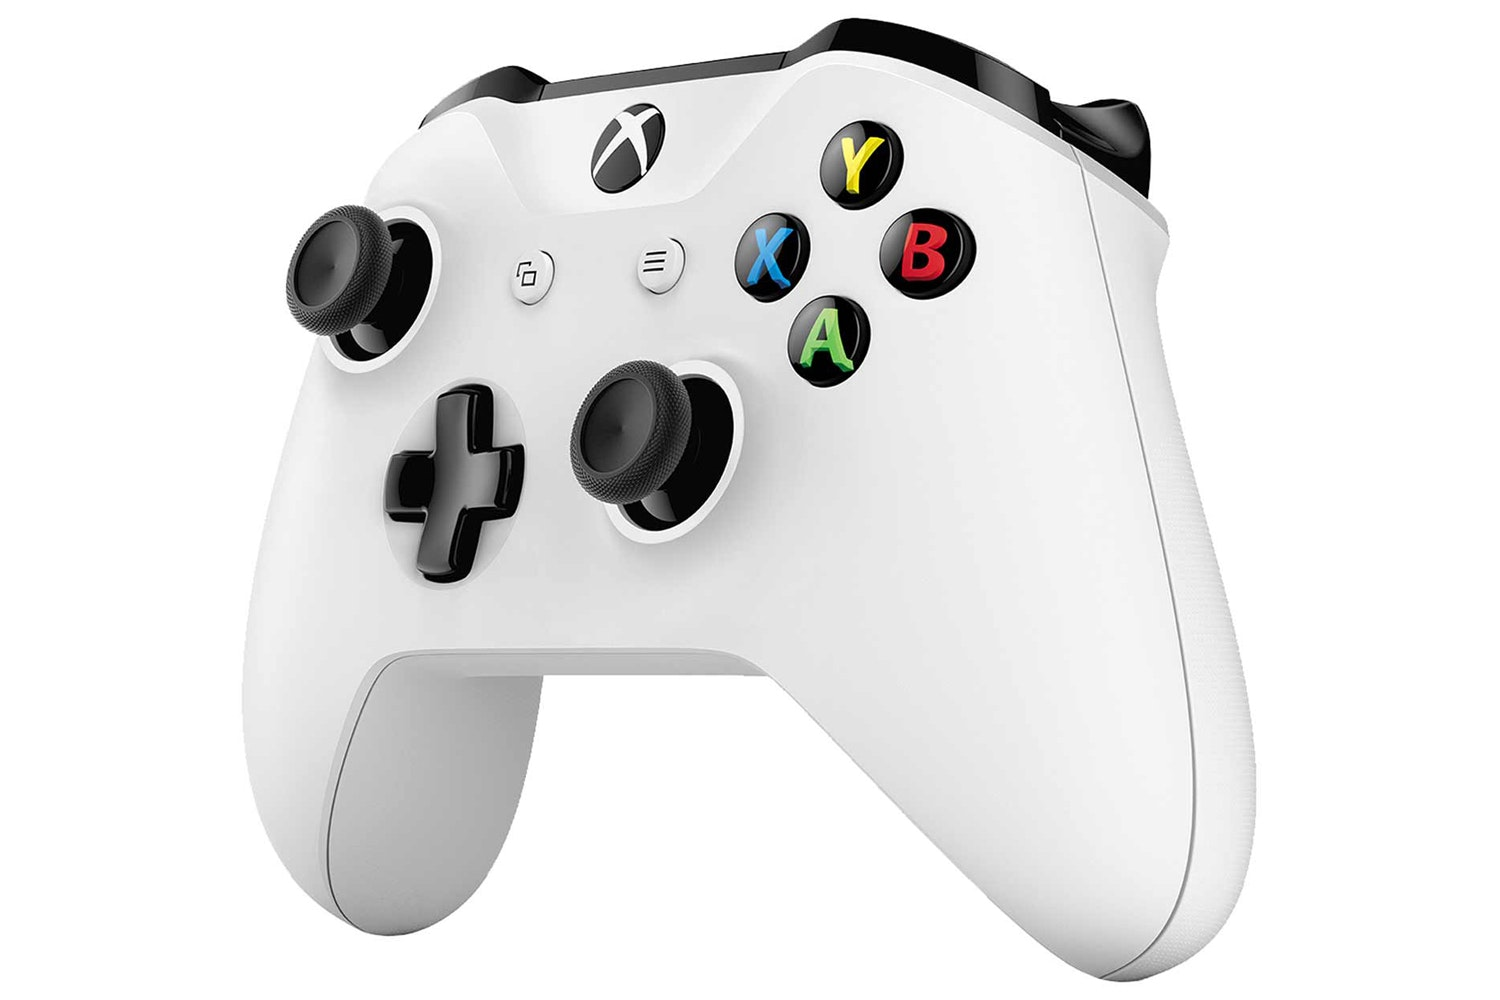 Xbox One S | 500GB with FIFA 18, Forza Horizon 3 & Hotwheels Expansion